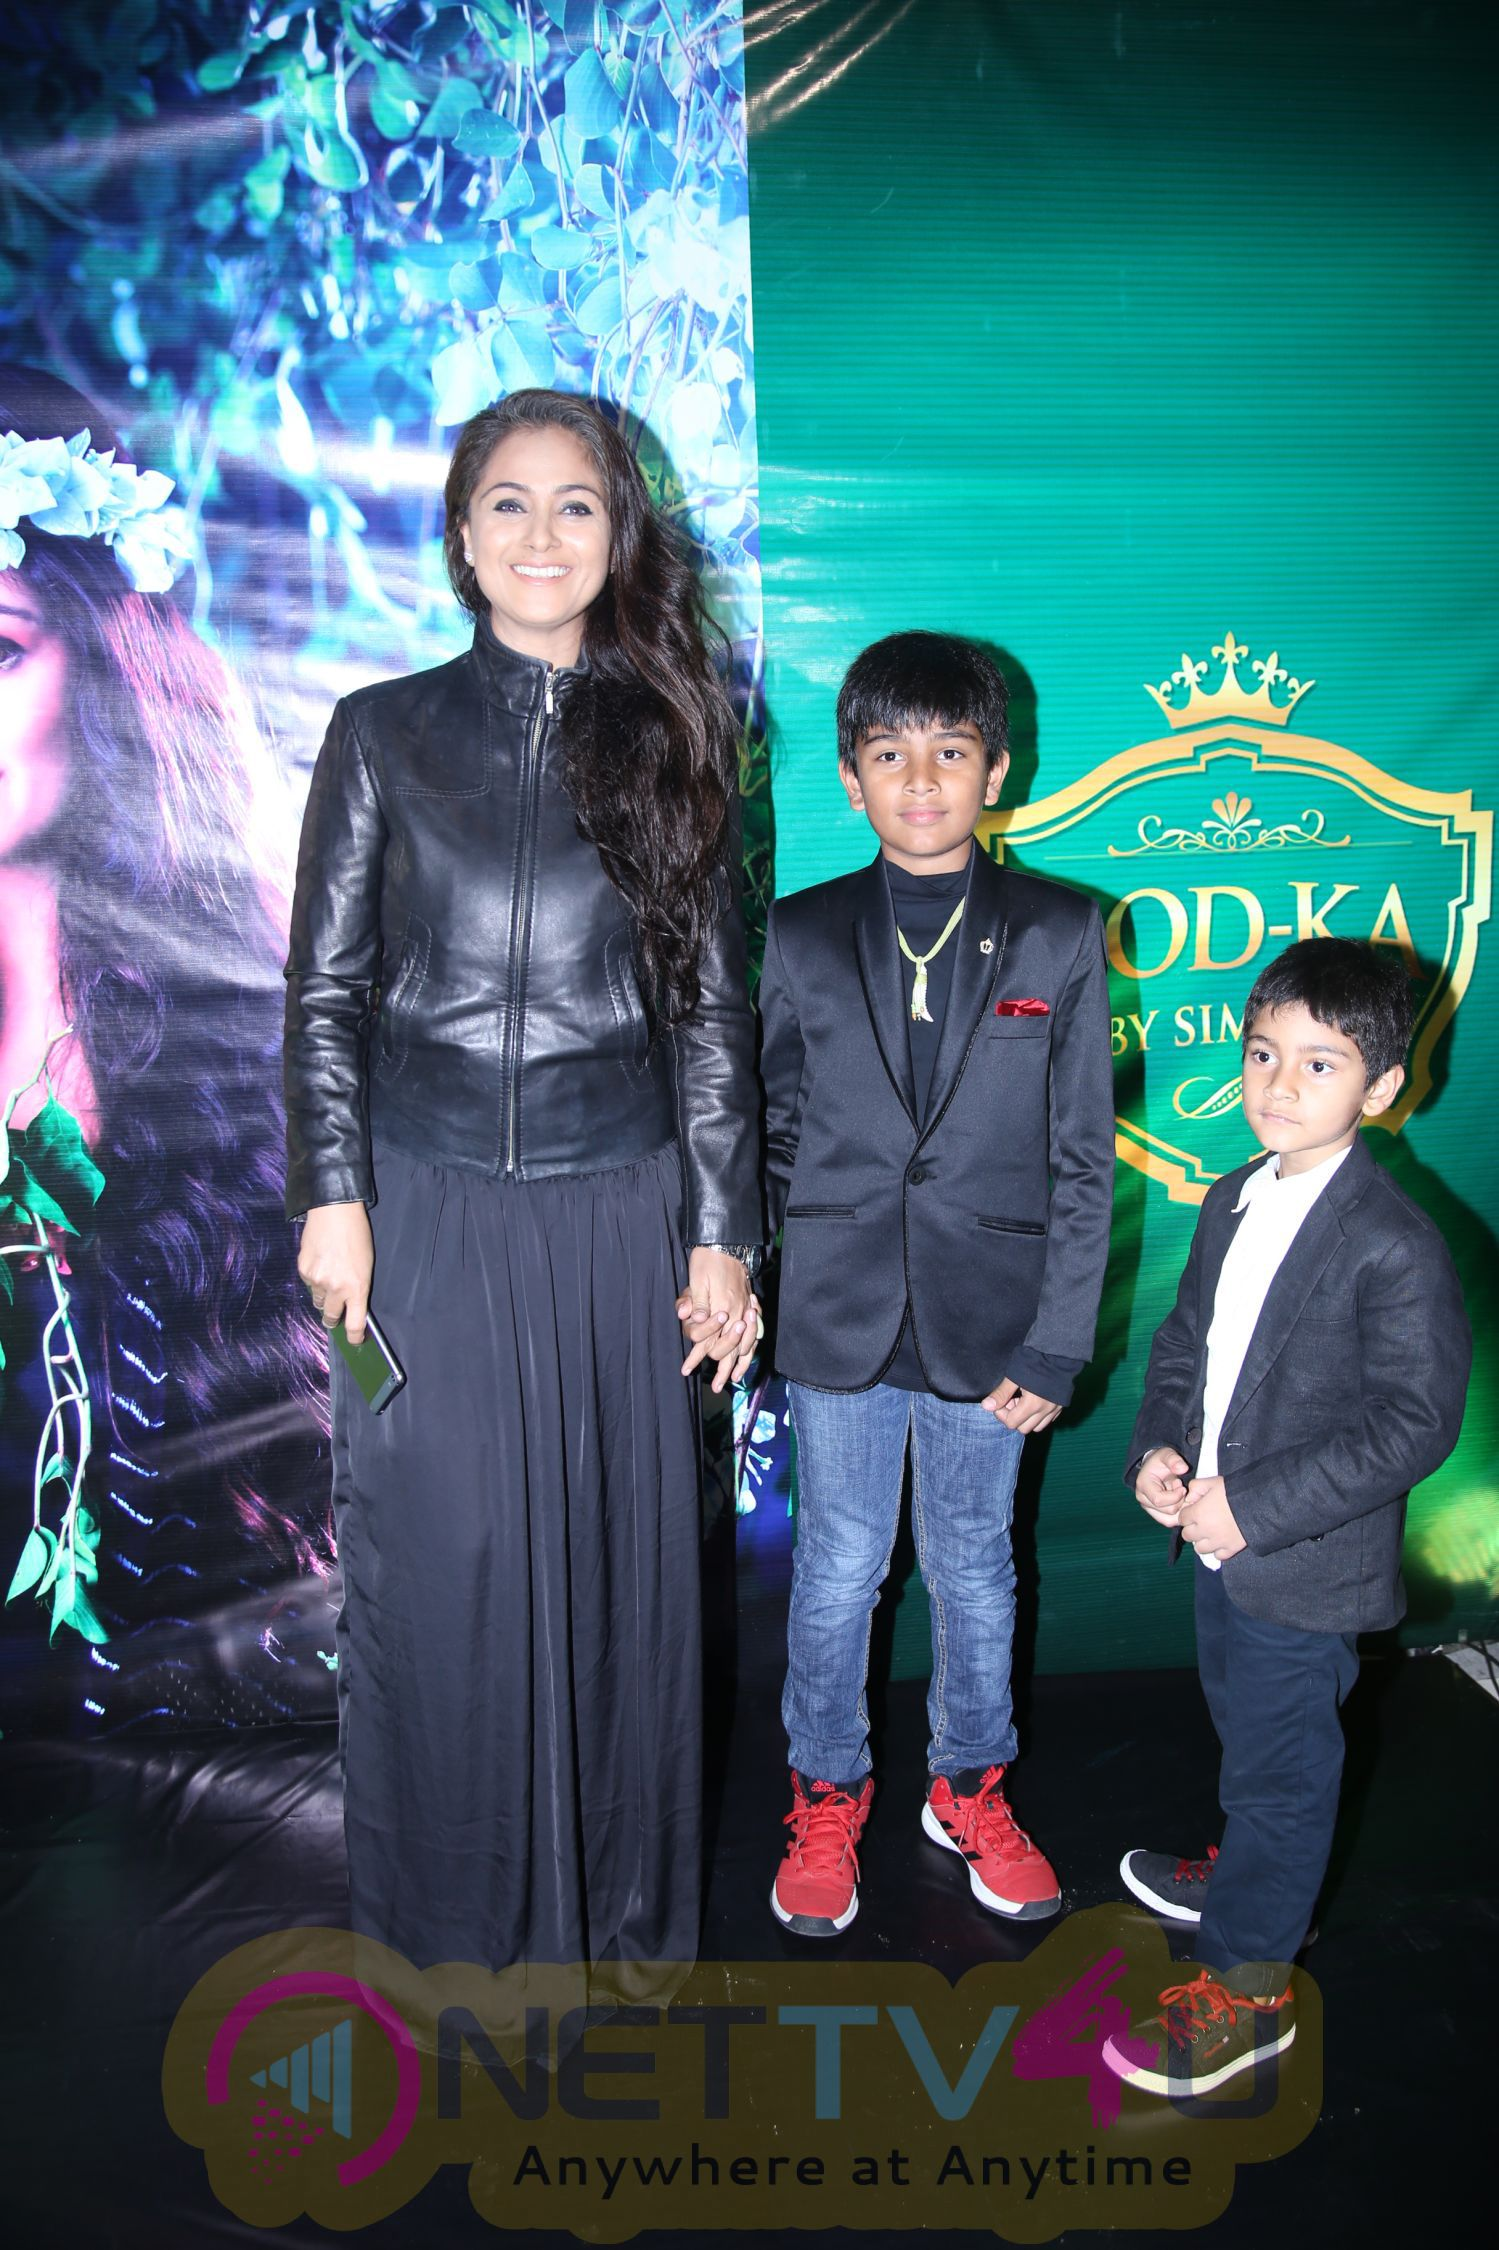 Actor Simran's Godka Shop Launch Photos